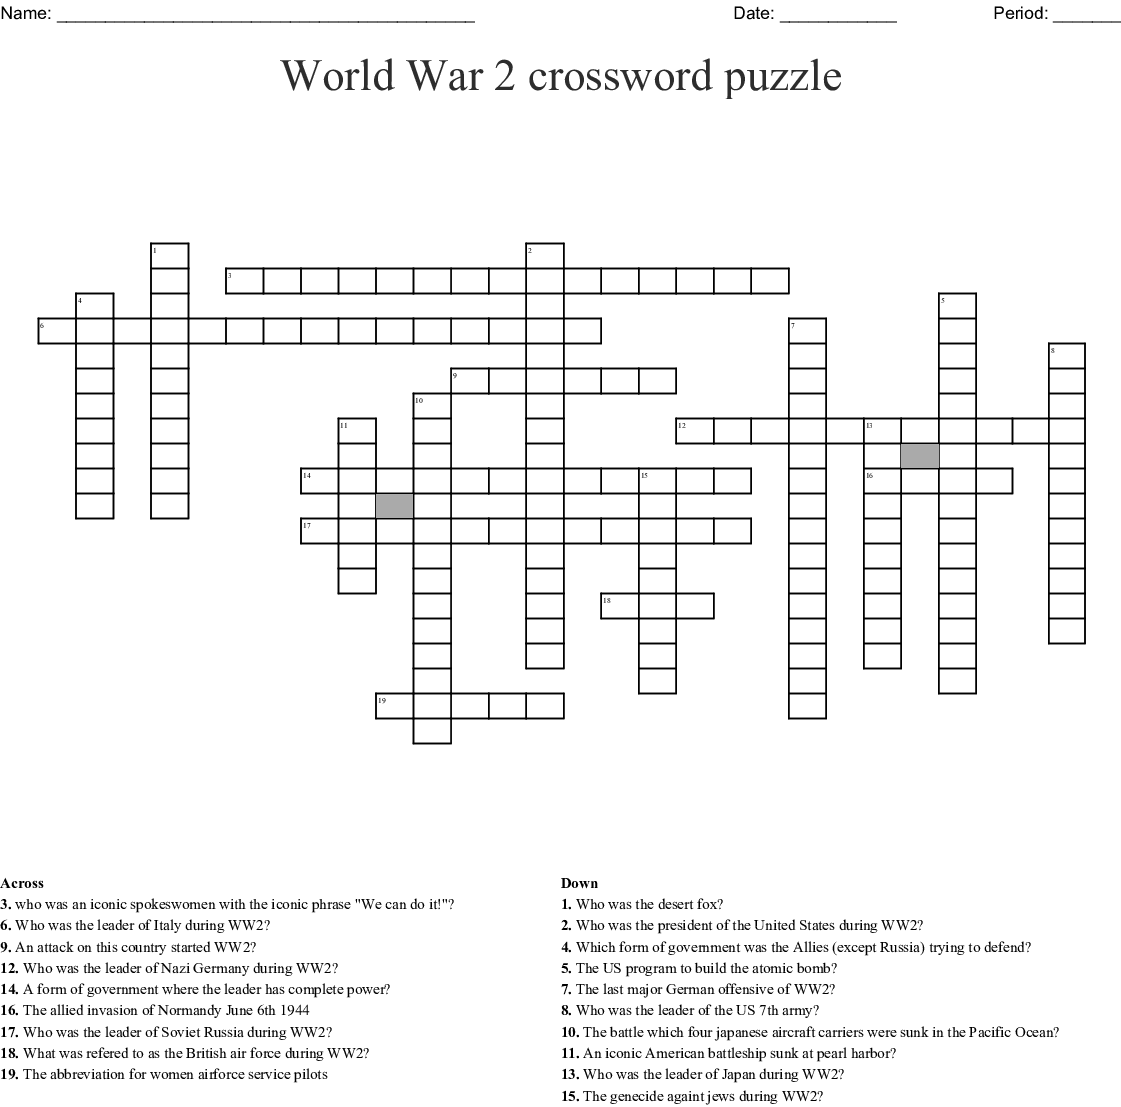 World War 2 Crossword Puzzle